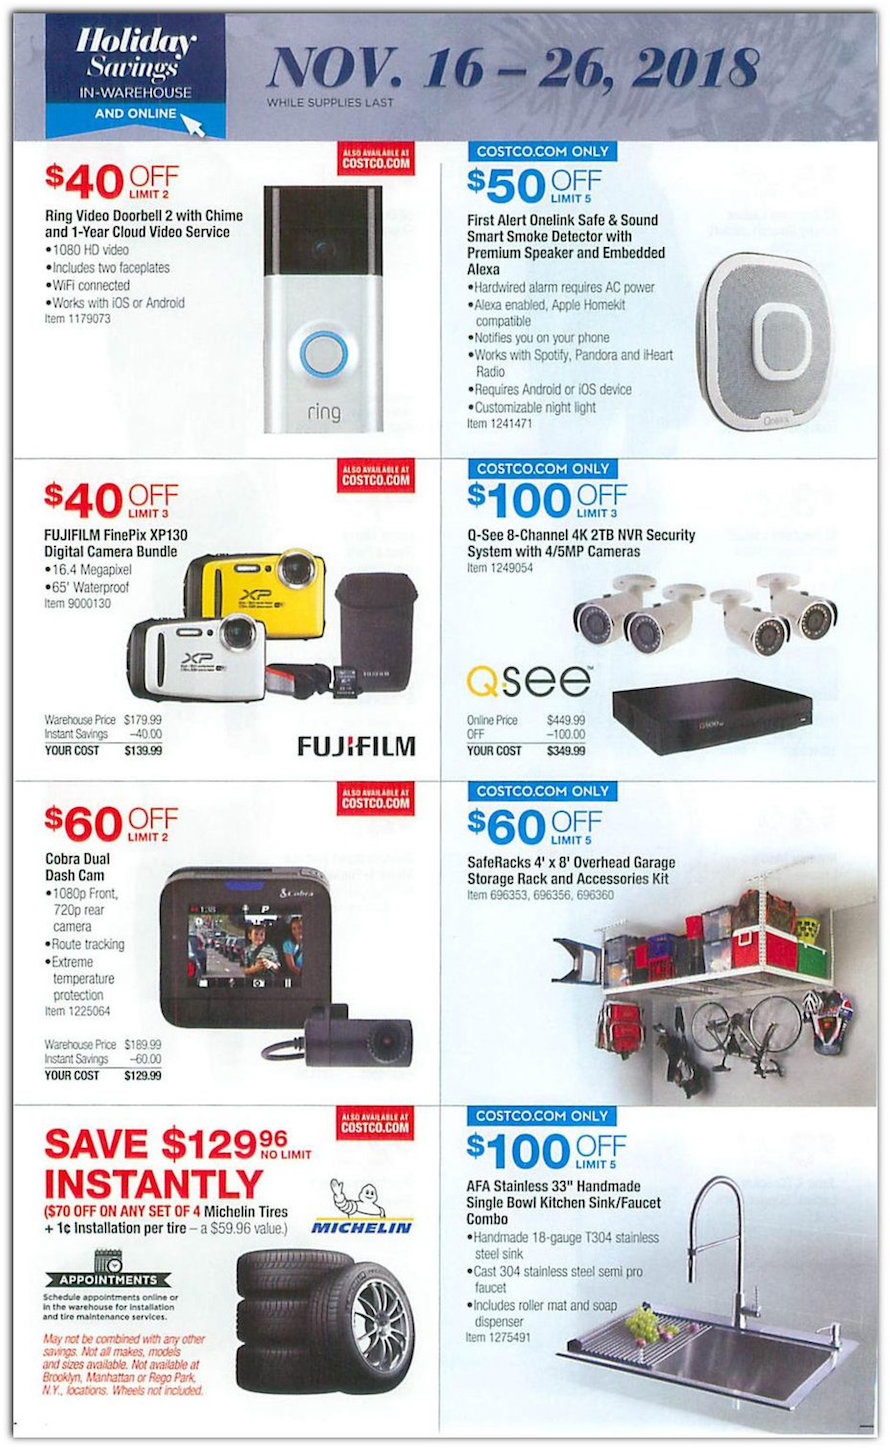 COSTCO ONLINE DEALS